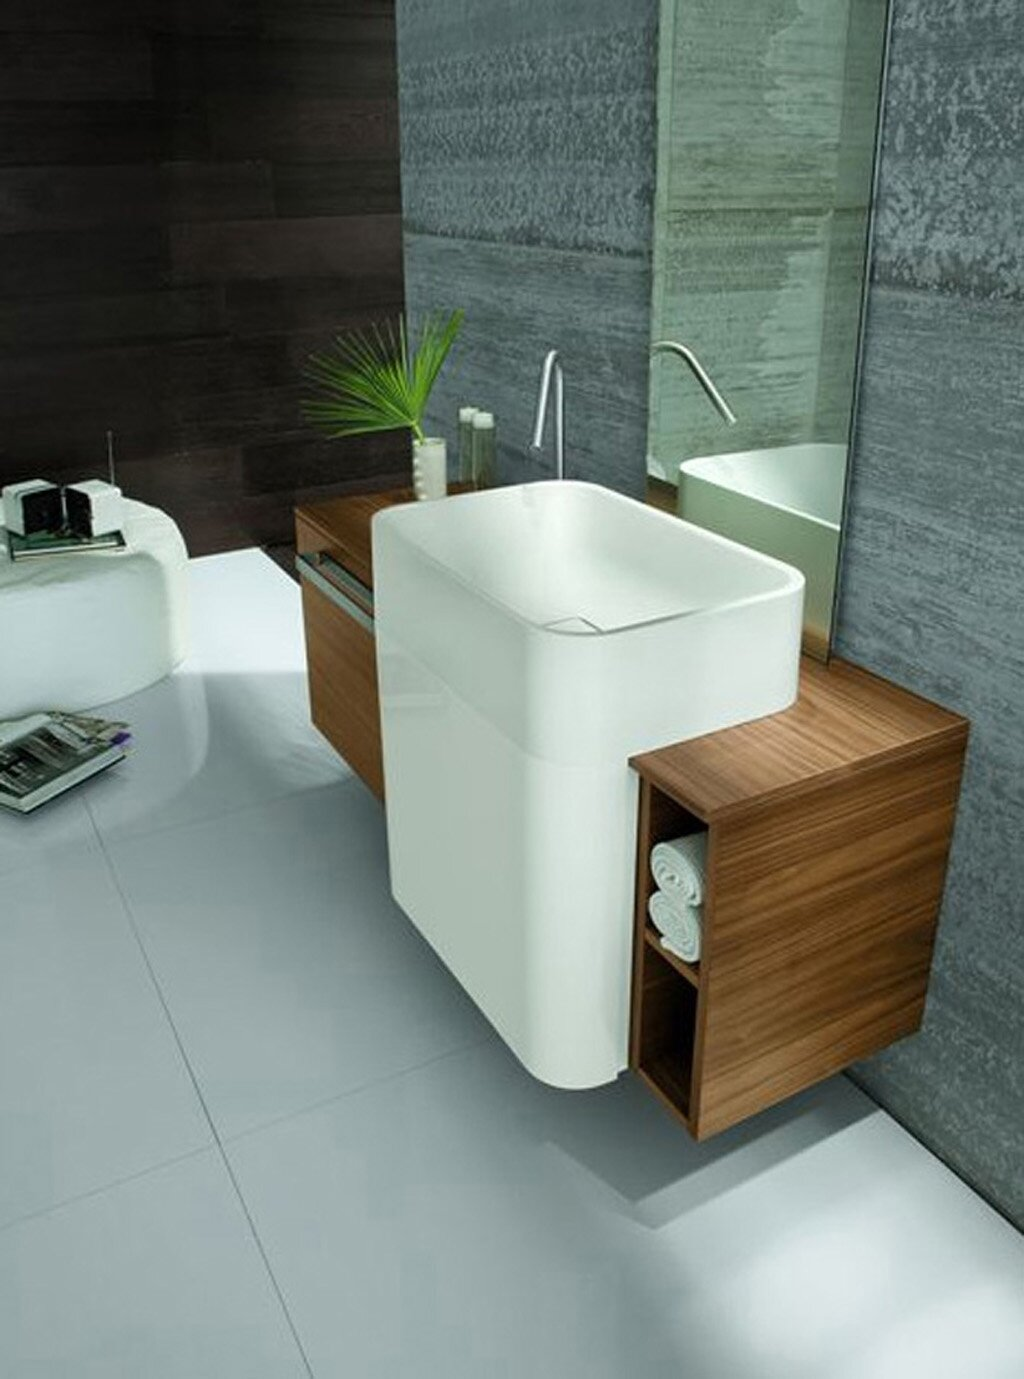 Top 15 bathroom sink designs and models mostbeautifulthings for Small bathroom sink ideas